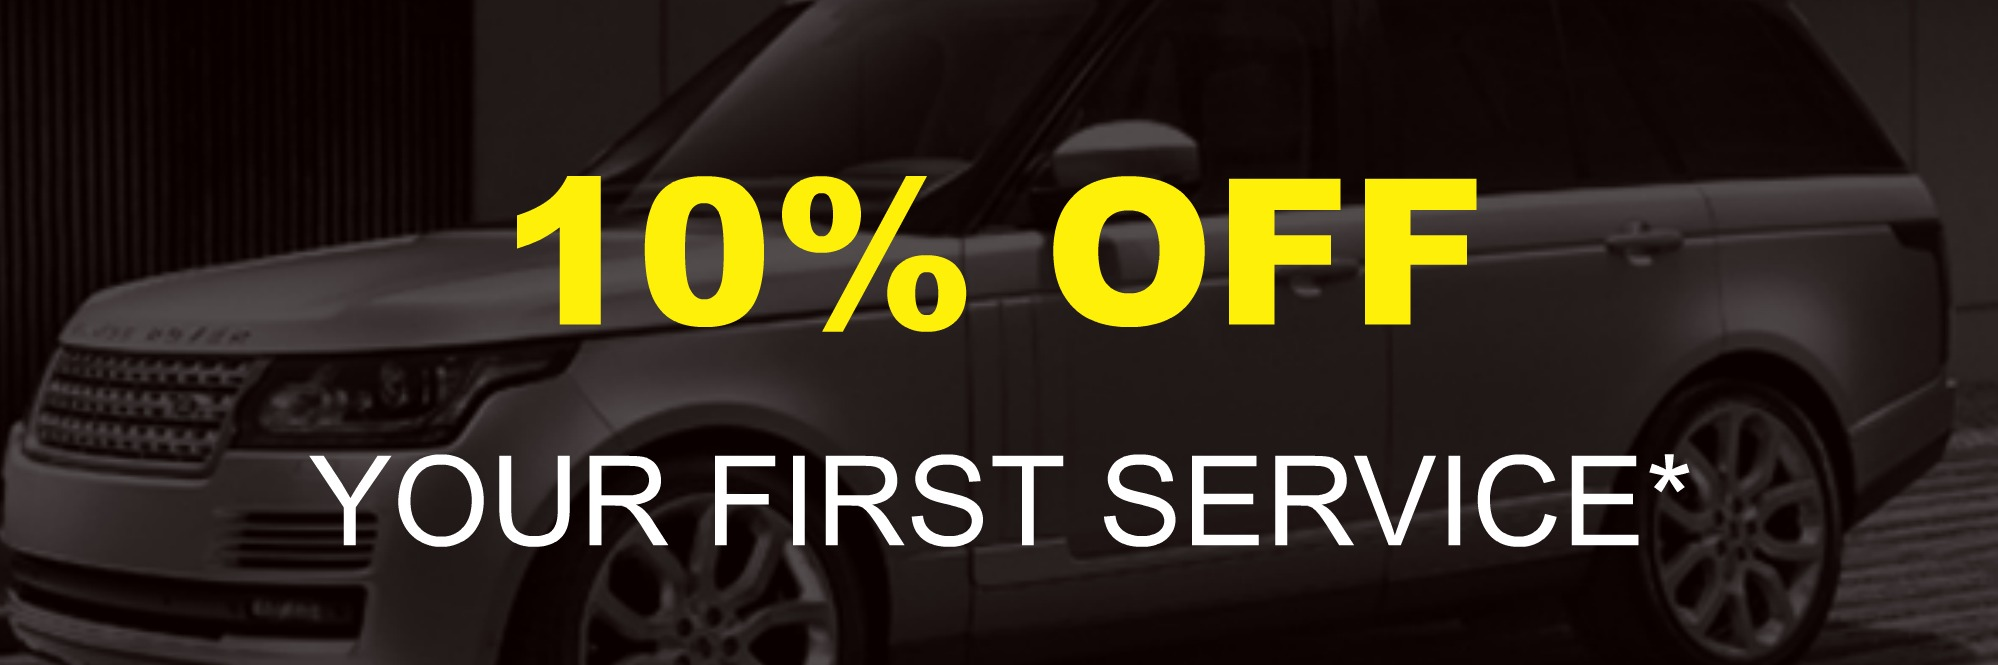 10% Off Your First Service